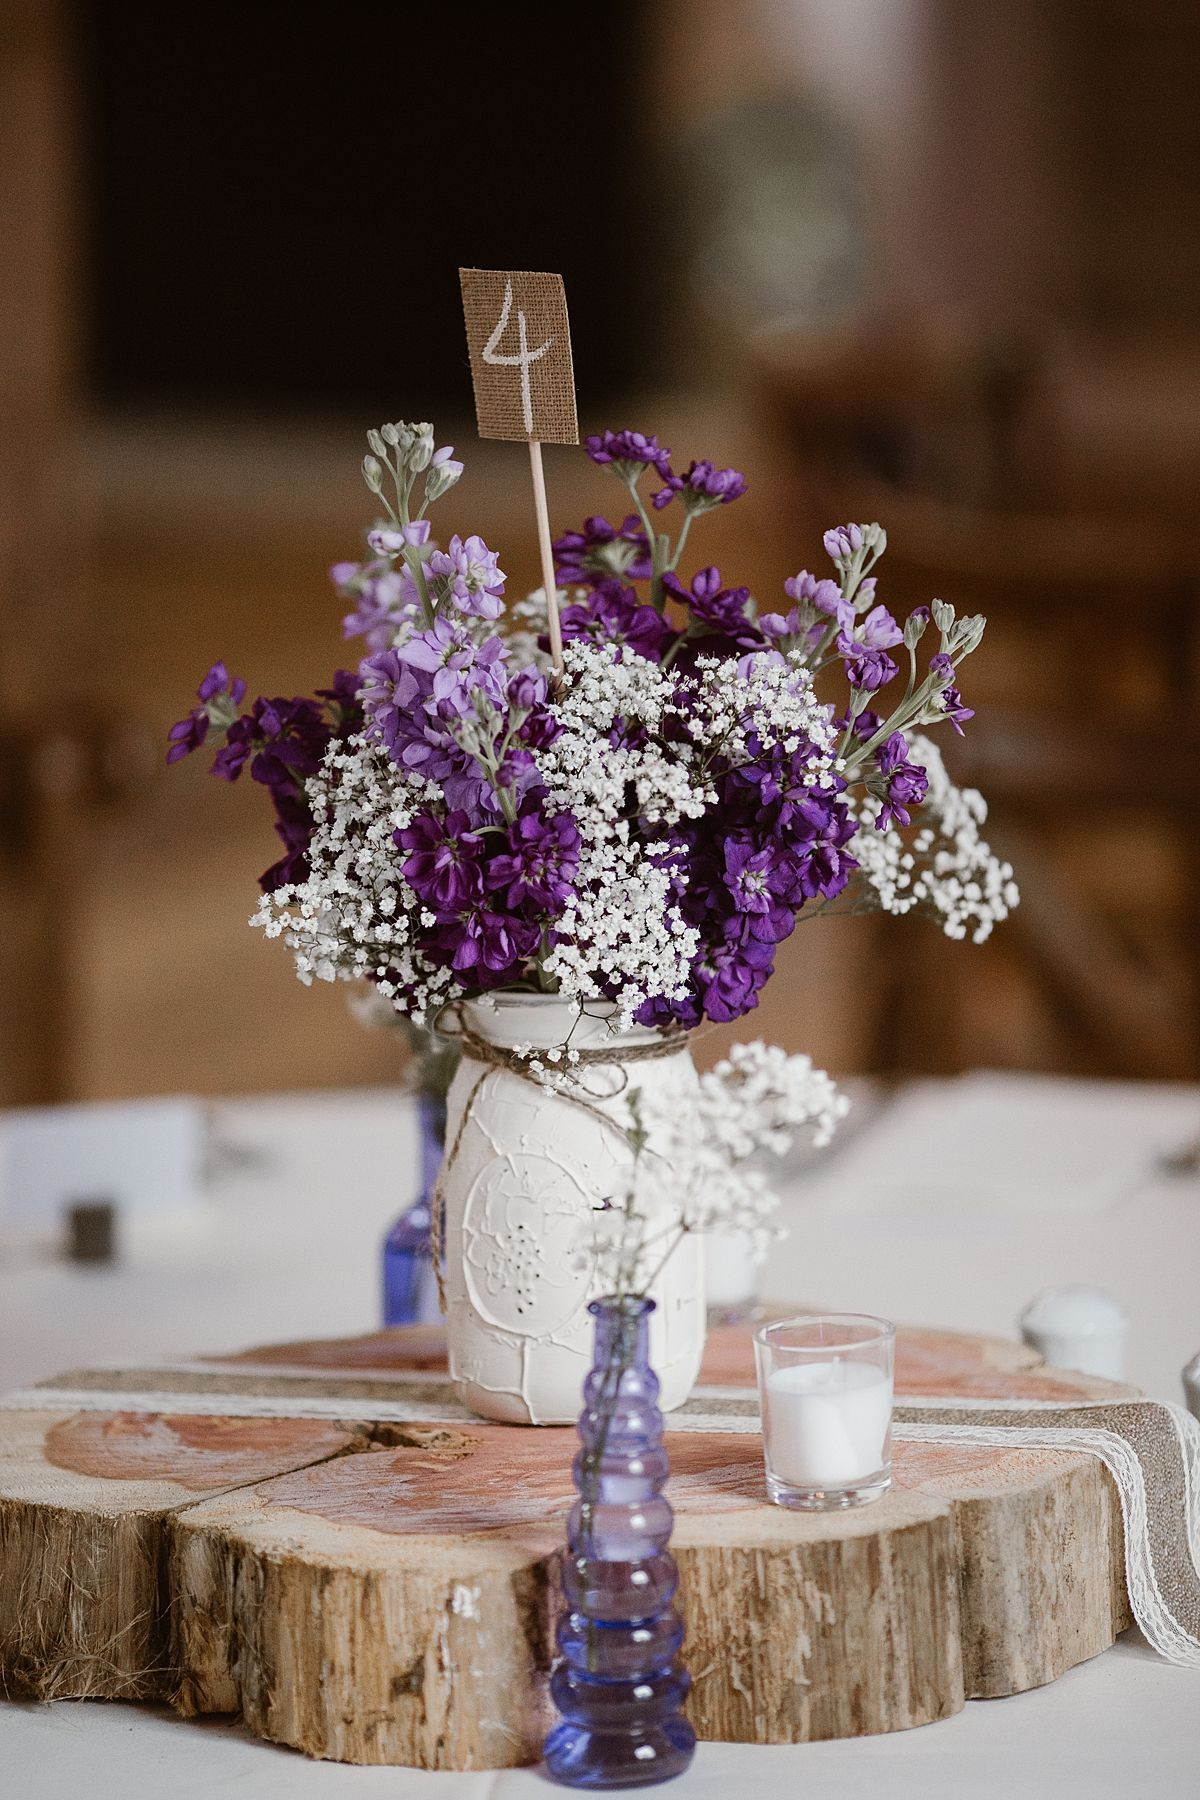 Diy camo wedding decorations  Charming Lavender Tennessee Wedding  Hostess With The Mostess